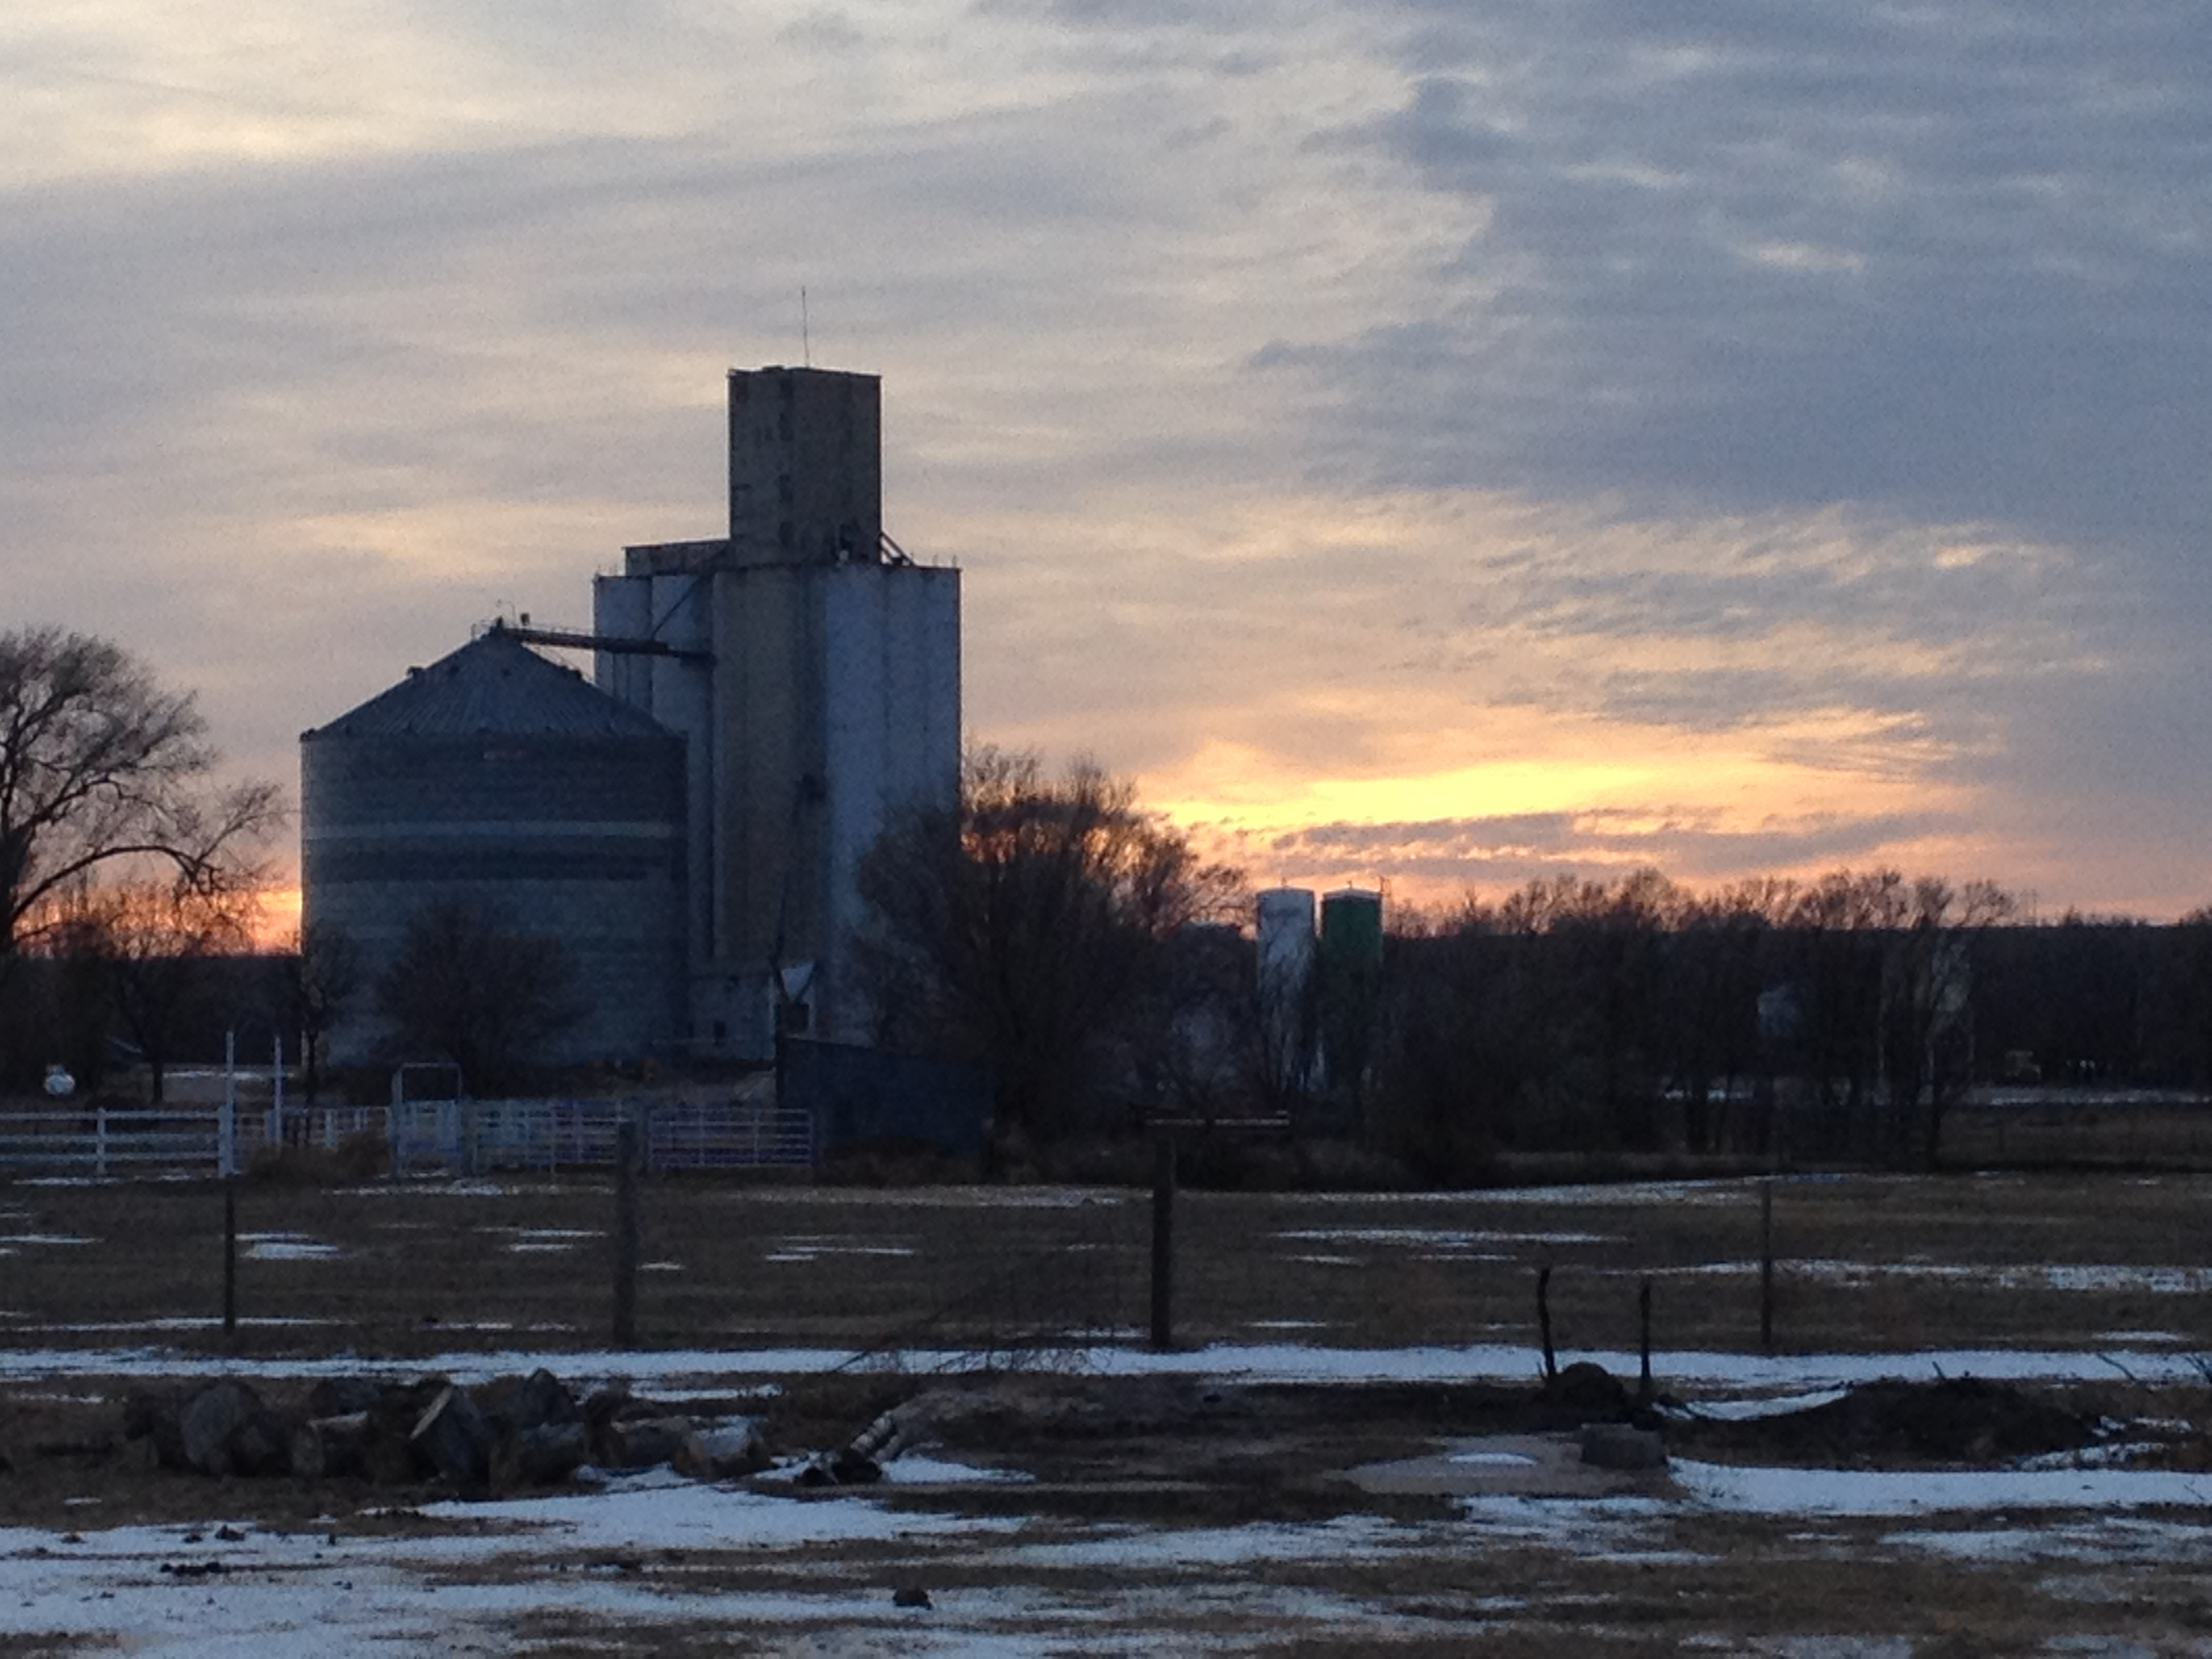 Grain elevator near Here, Kansas. (Photo by Barney Barnhill)